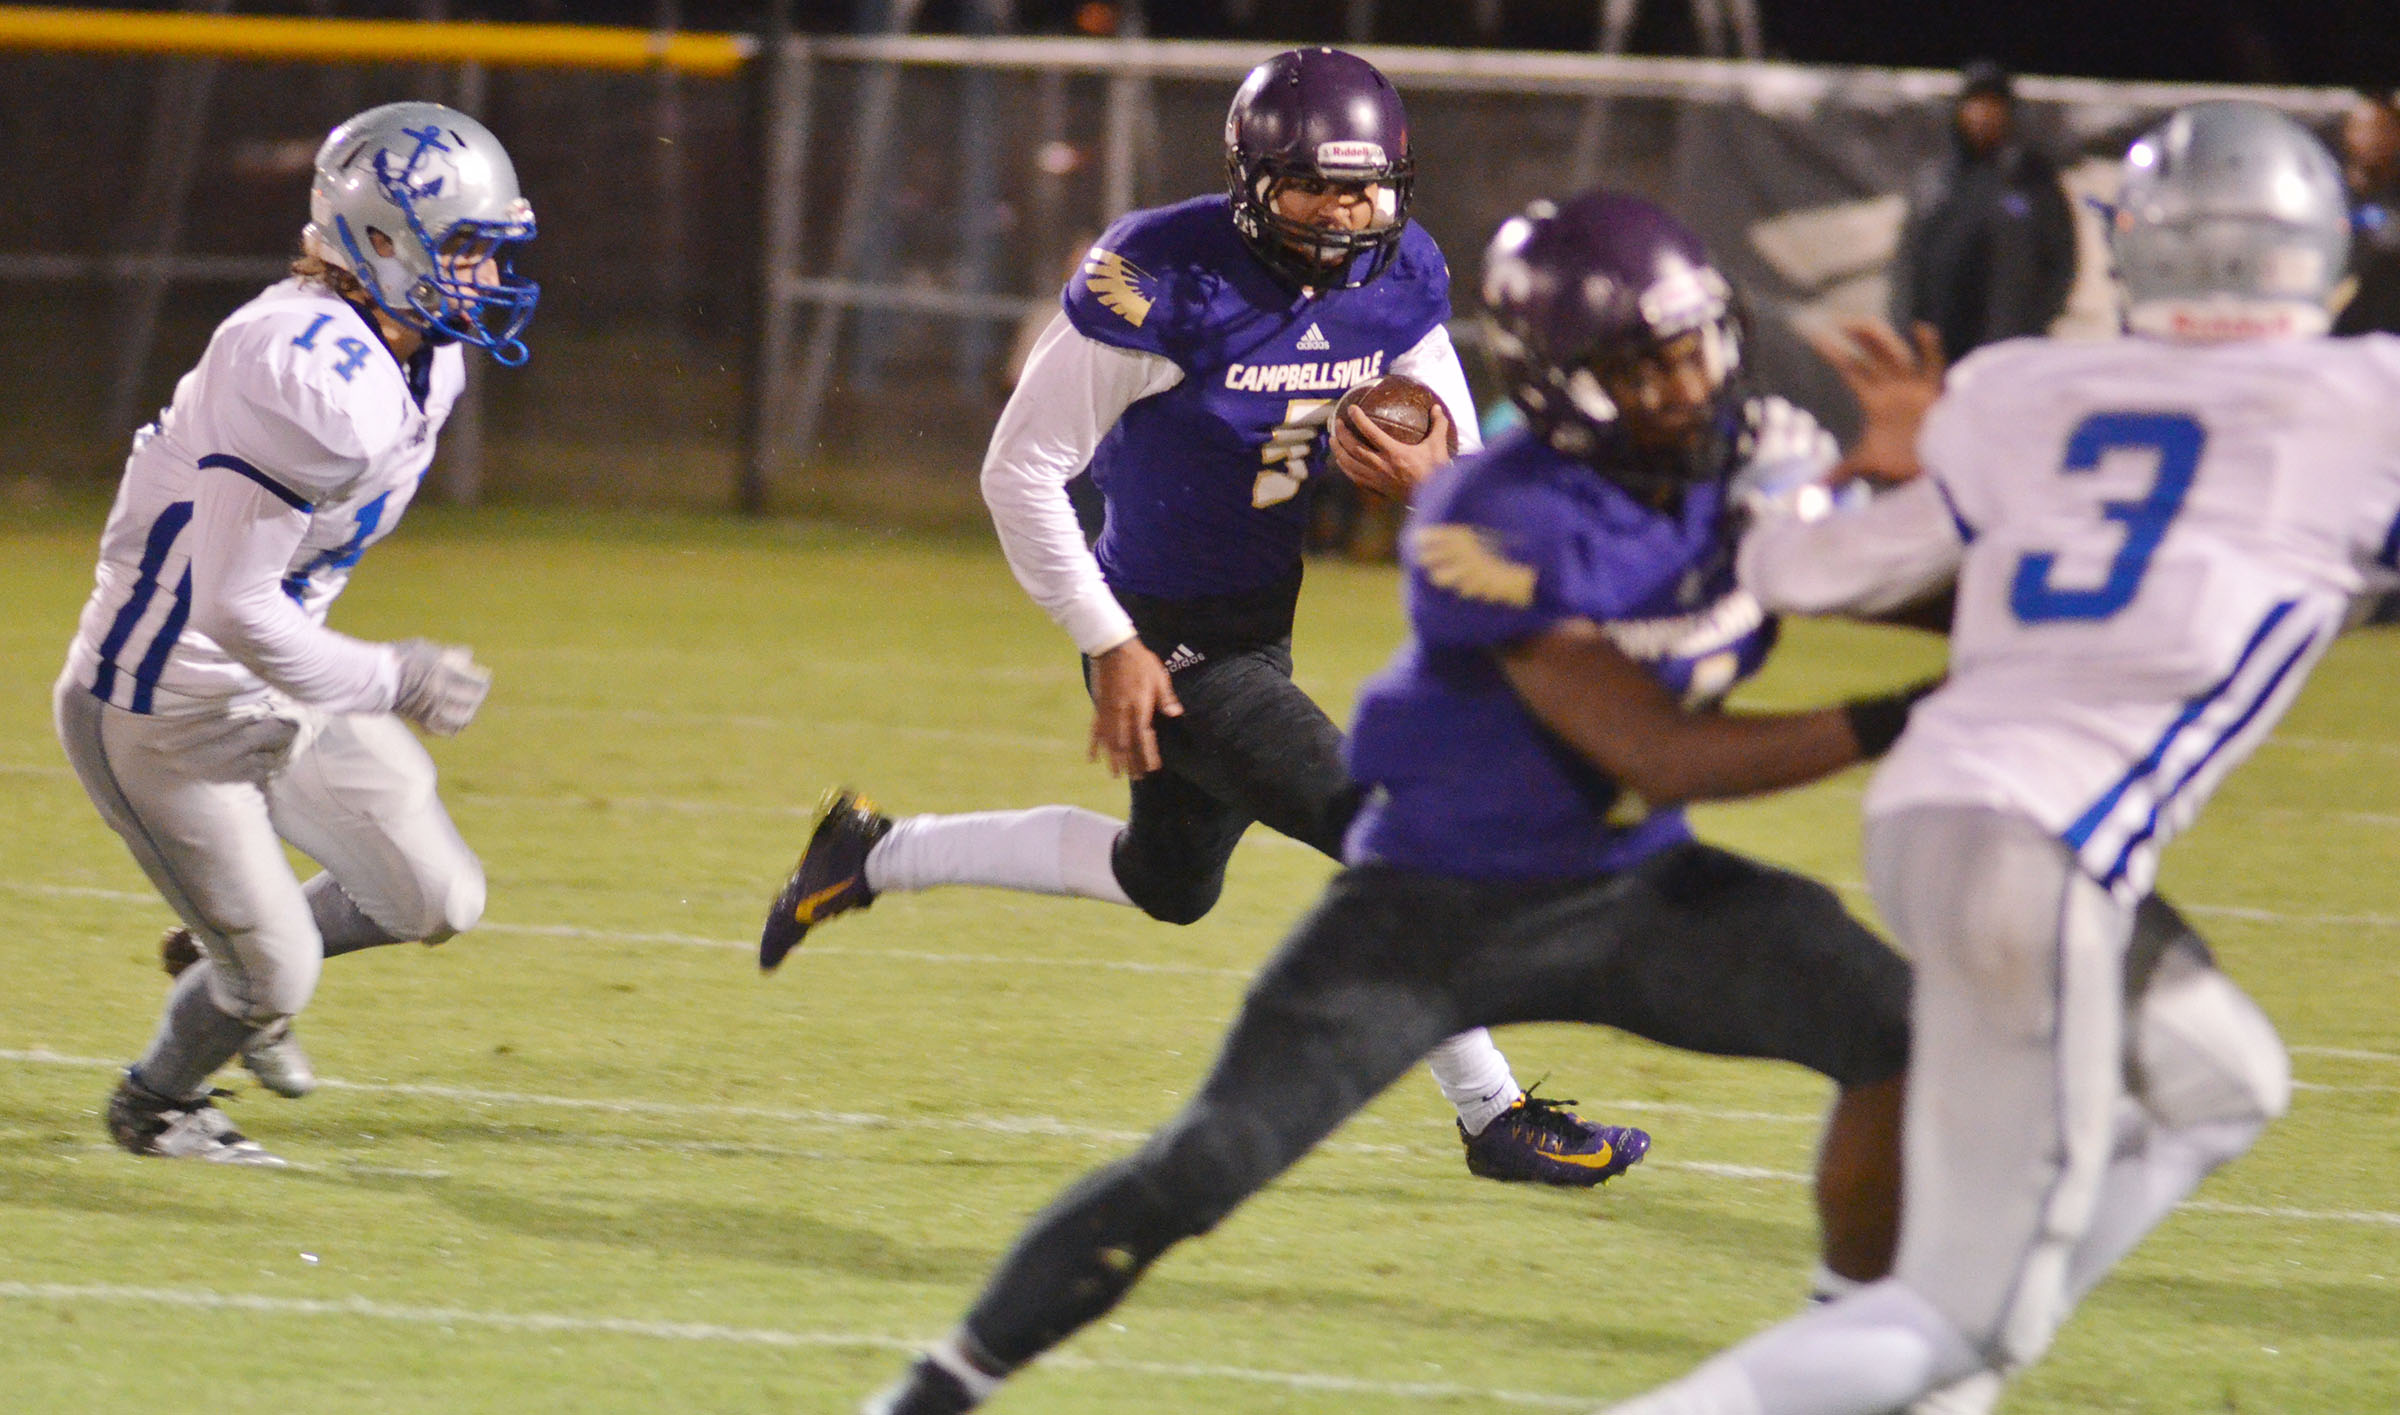 CHS senior Arick Groves runs the ball as his teammates block for him.